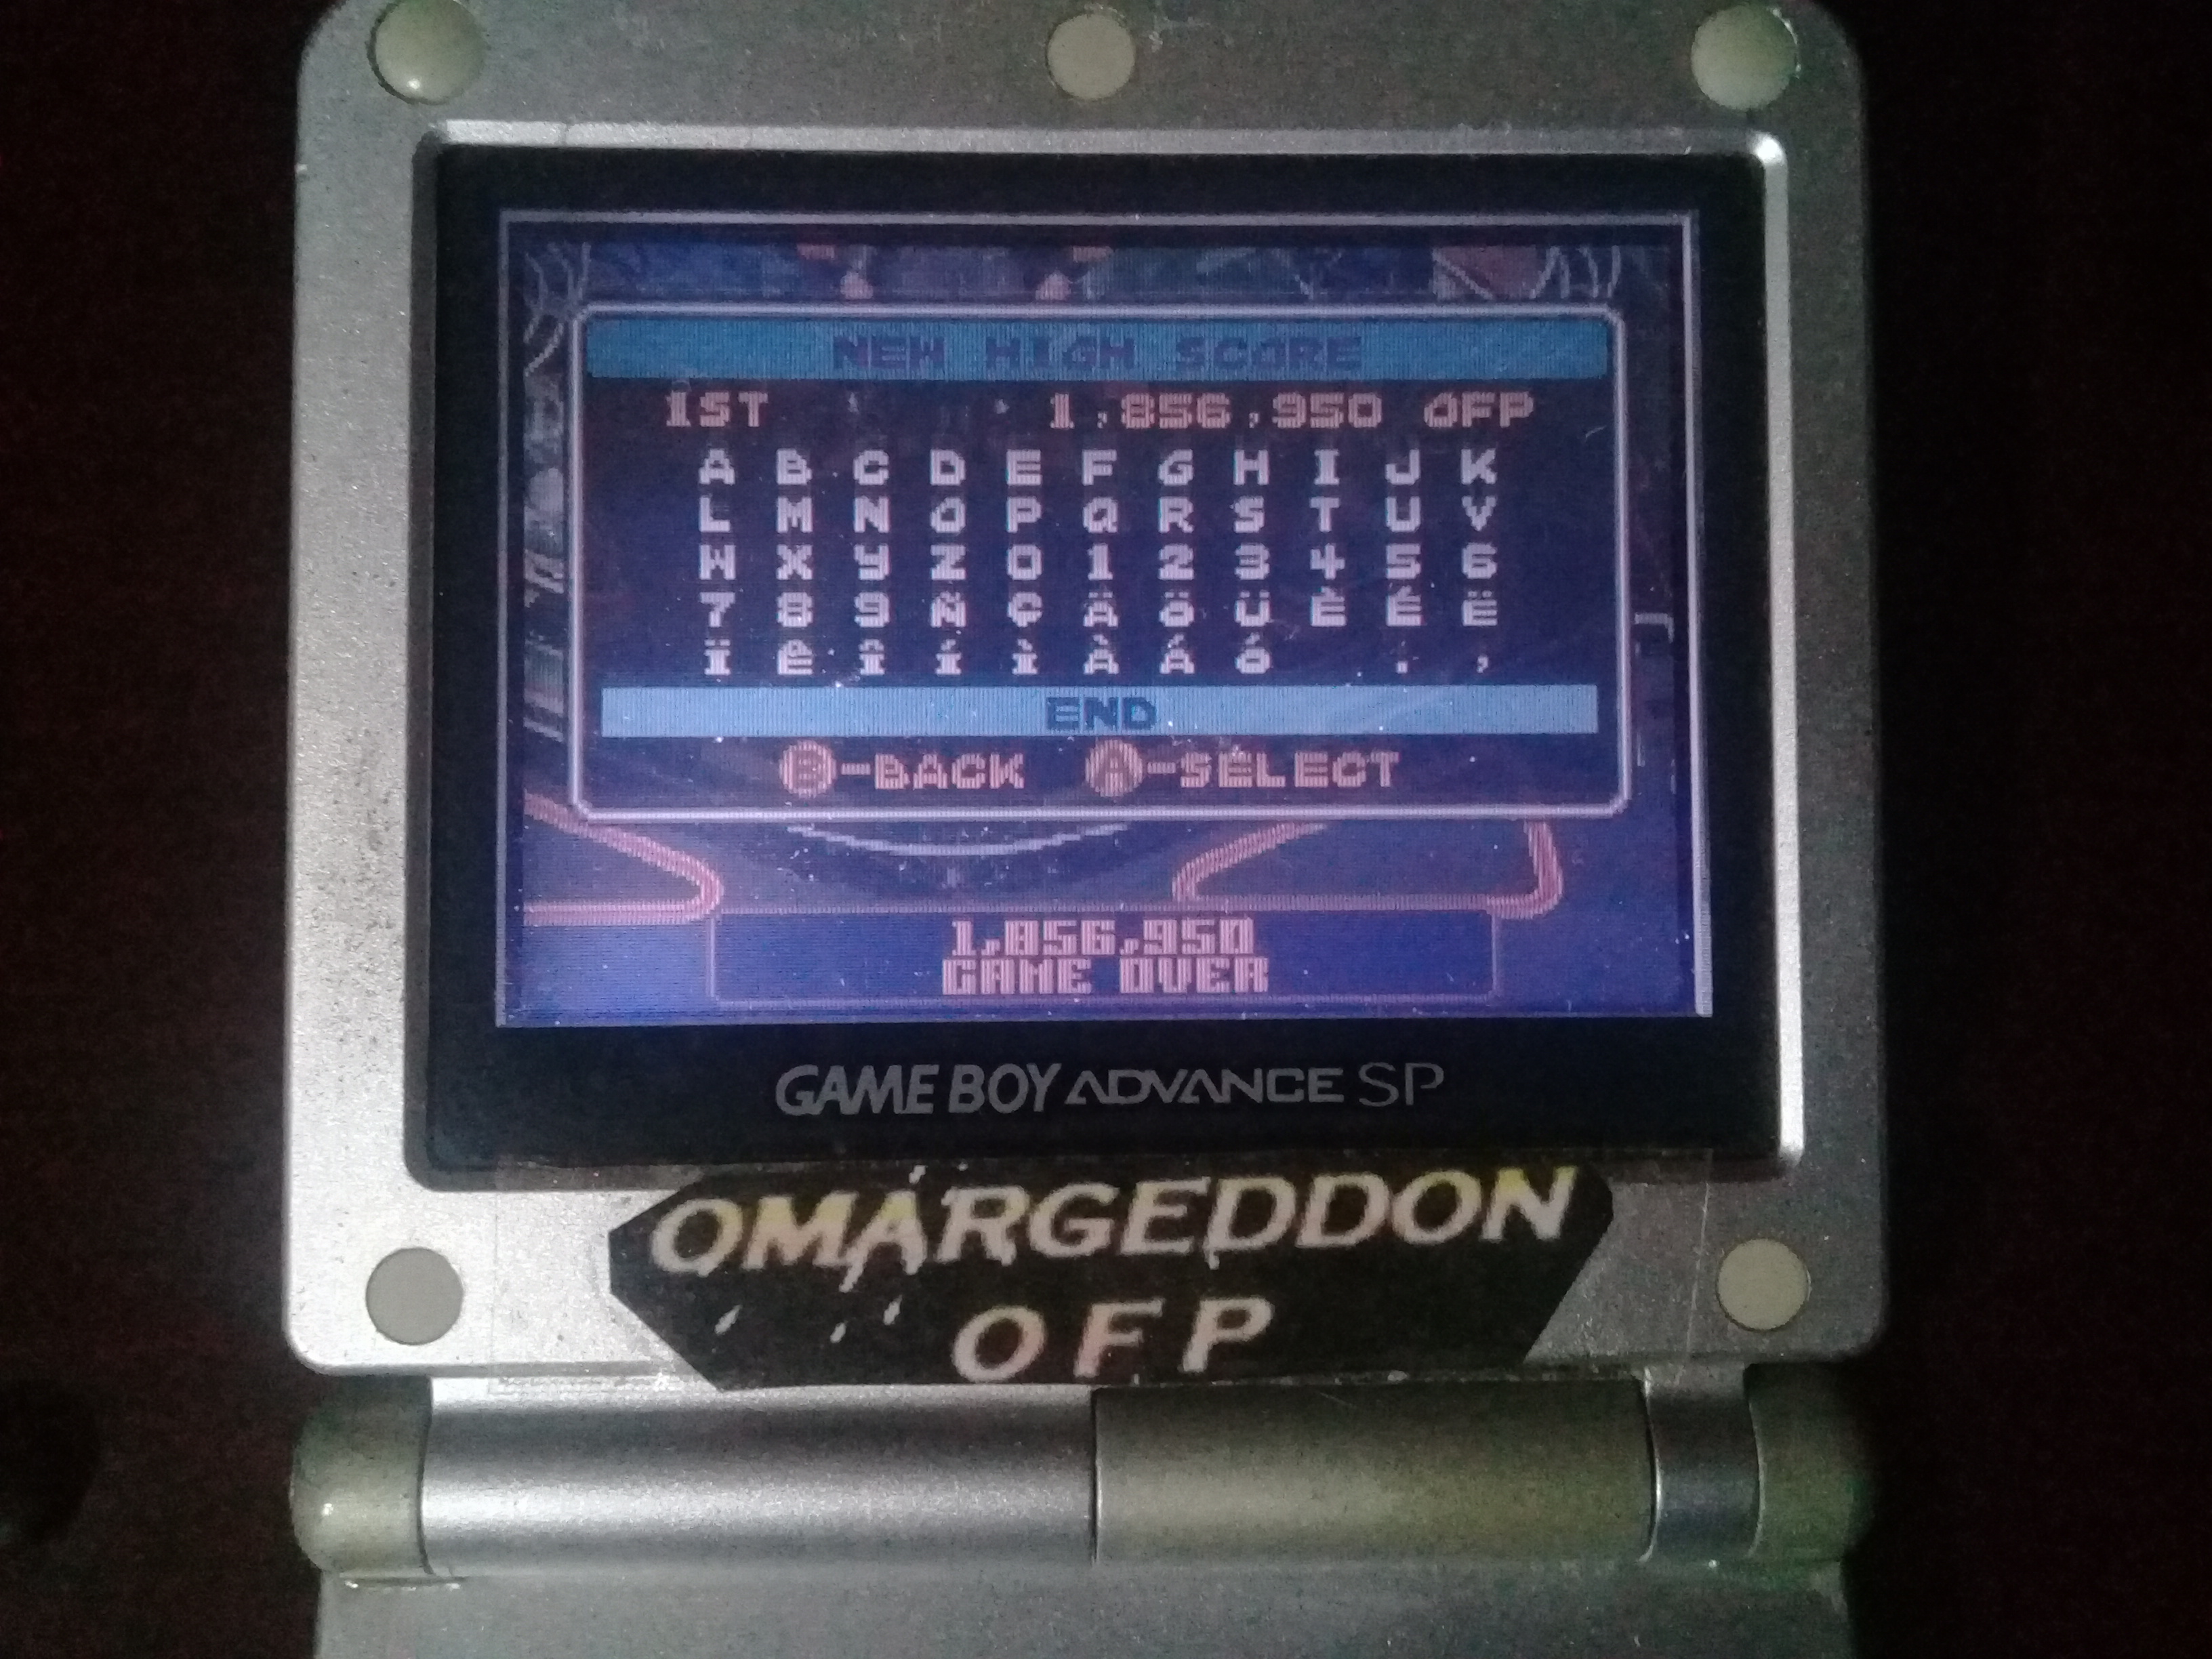 omargeddon: Pinball Advance: Tarantula [3 Balls] [Medium] (GBA) 1,856,950 points on 2019-10-20 01:17:12